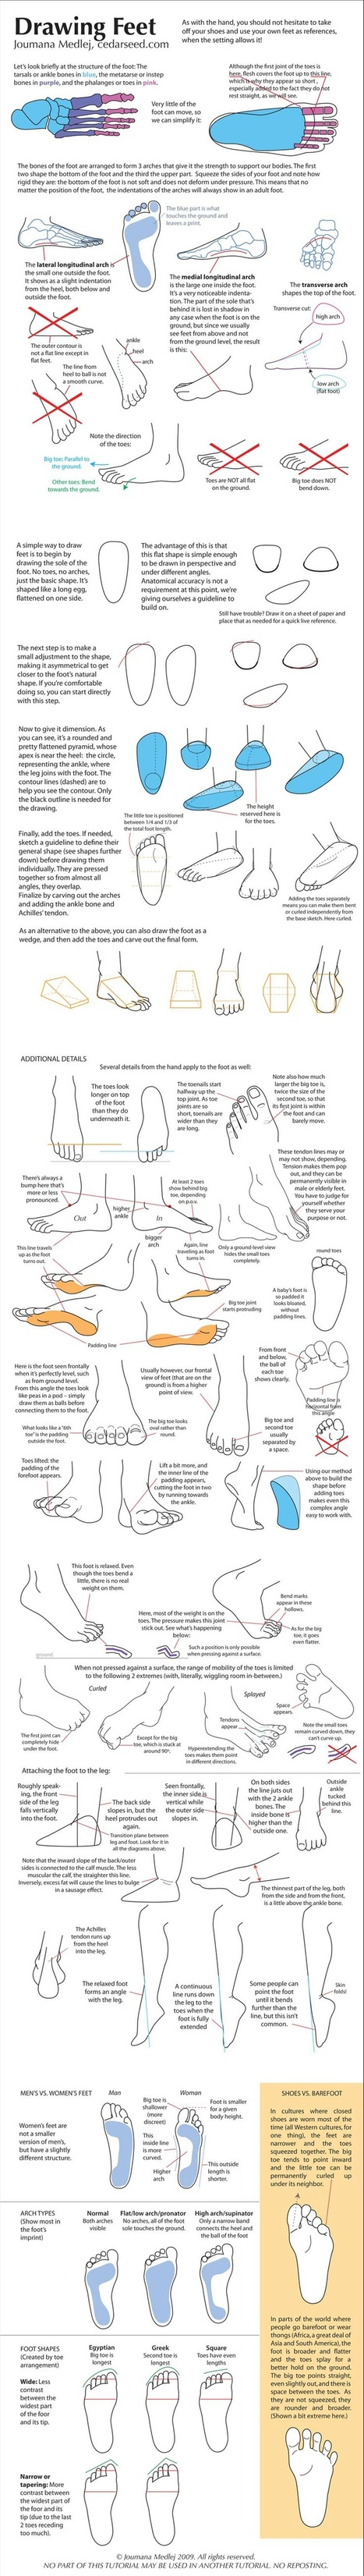 Feet Drawing Reference Guide | Drawing References and Resources | Scoop.it